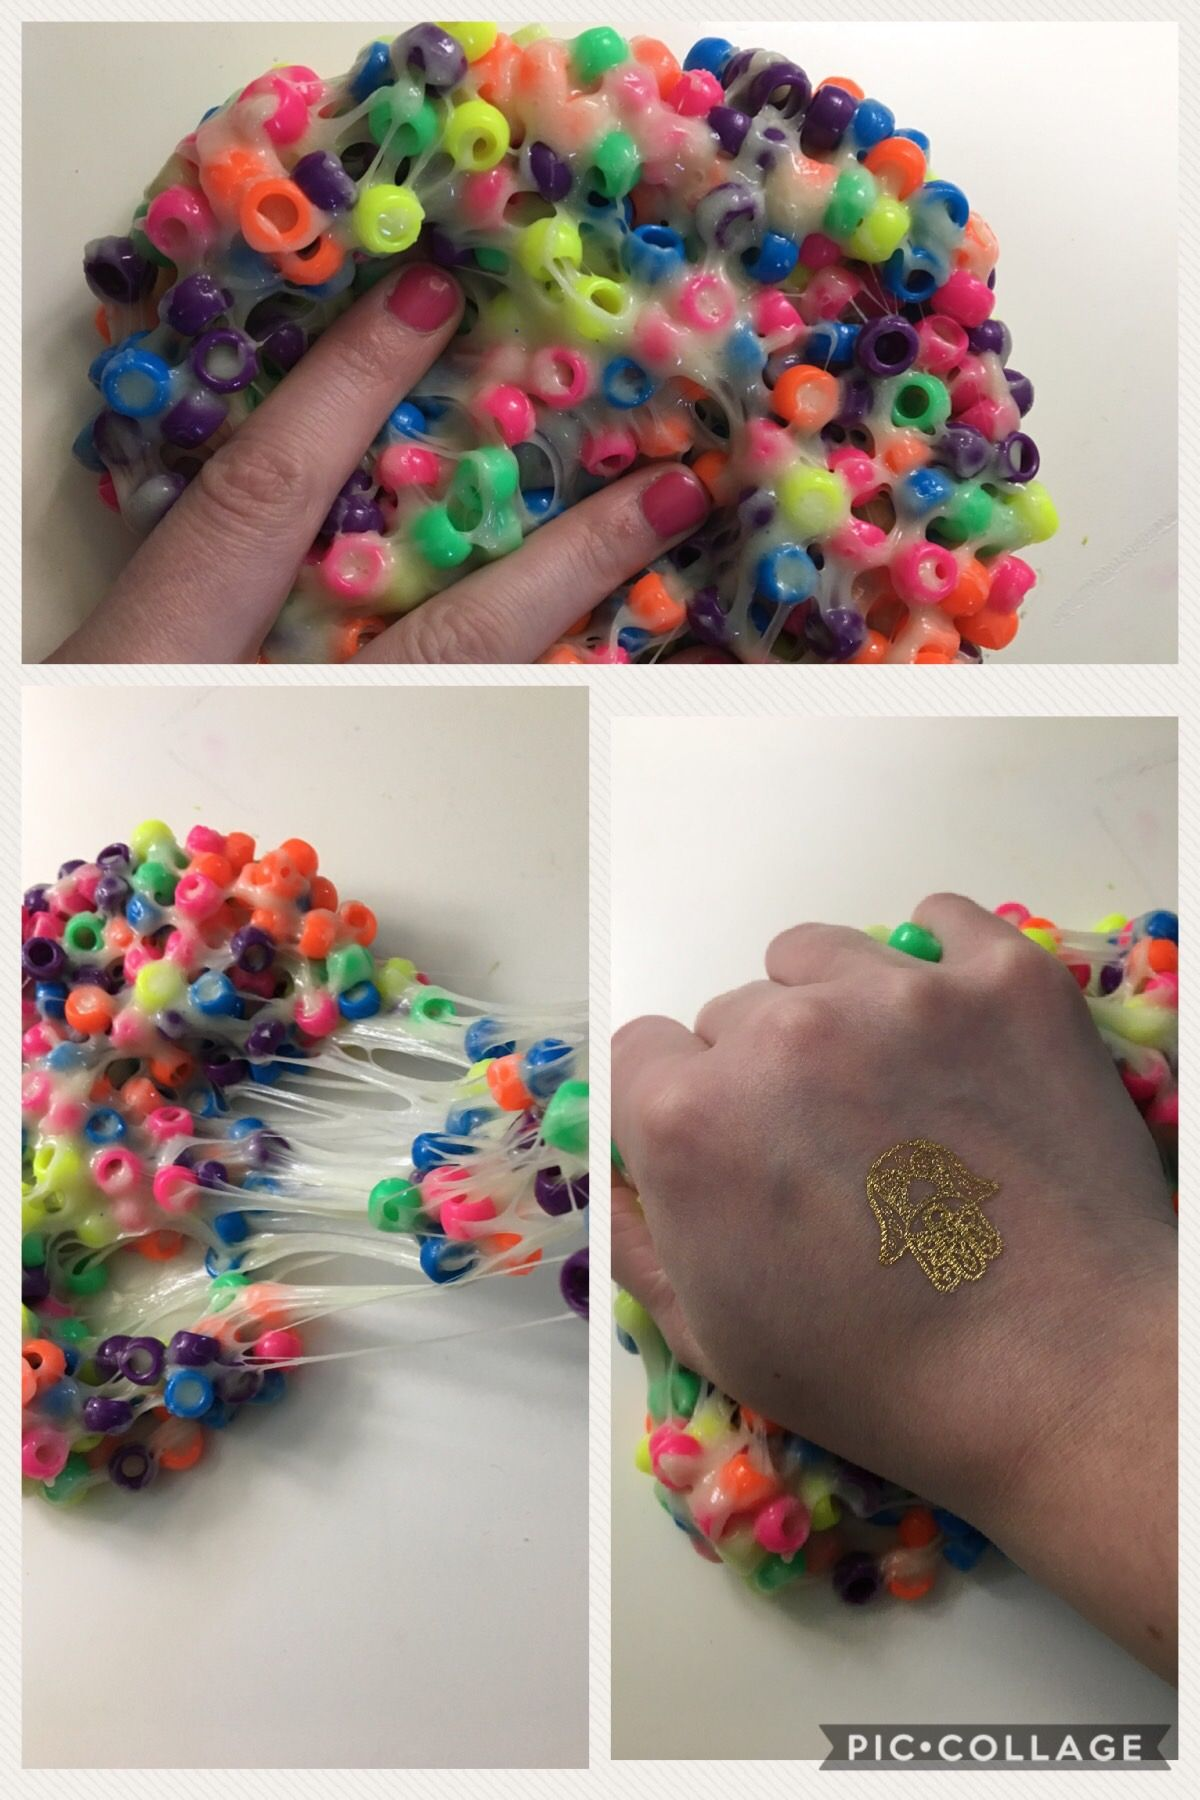 Wonder Bead Crunchy Slime 1 Cup School Glue 1 8 Tsp Of Baking Soda 1 Tbs Of Eye Contact Solution Make Sure It Has B Slime With Beads Diy Slime Slime Crunchy